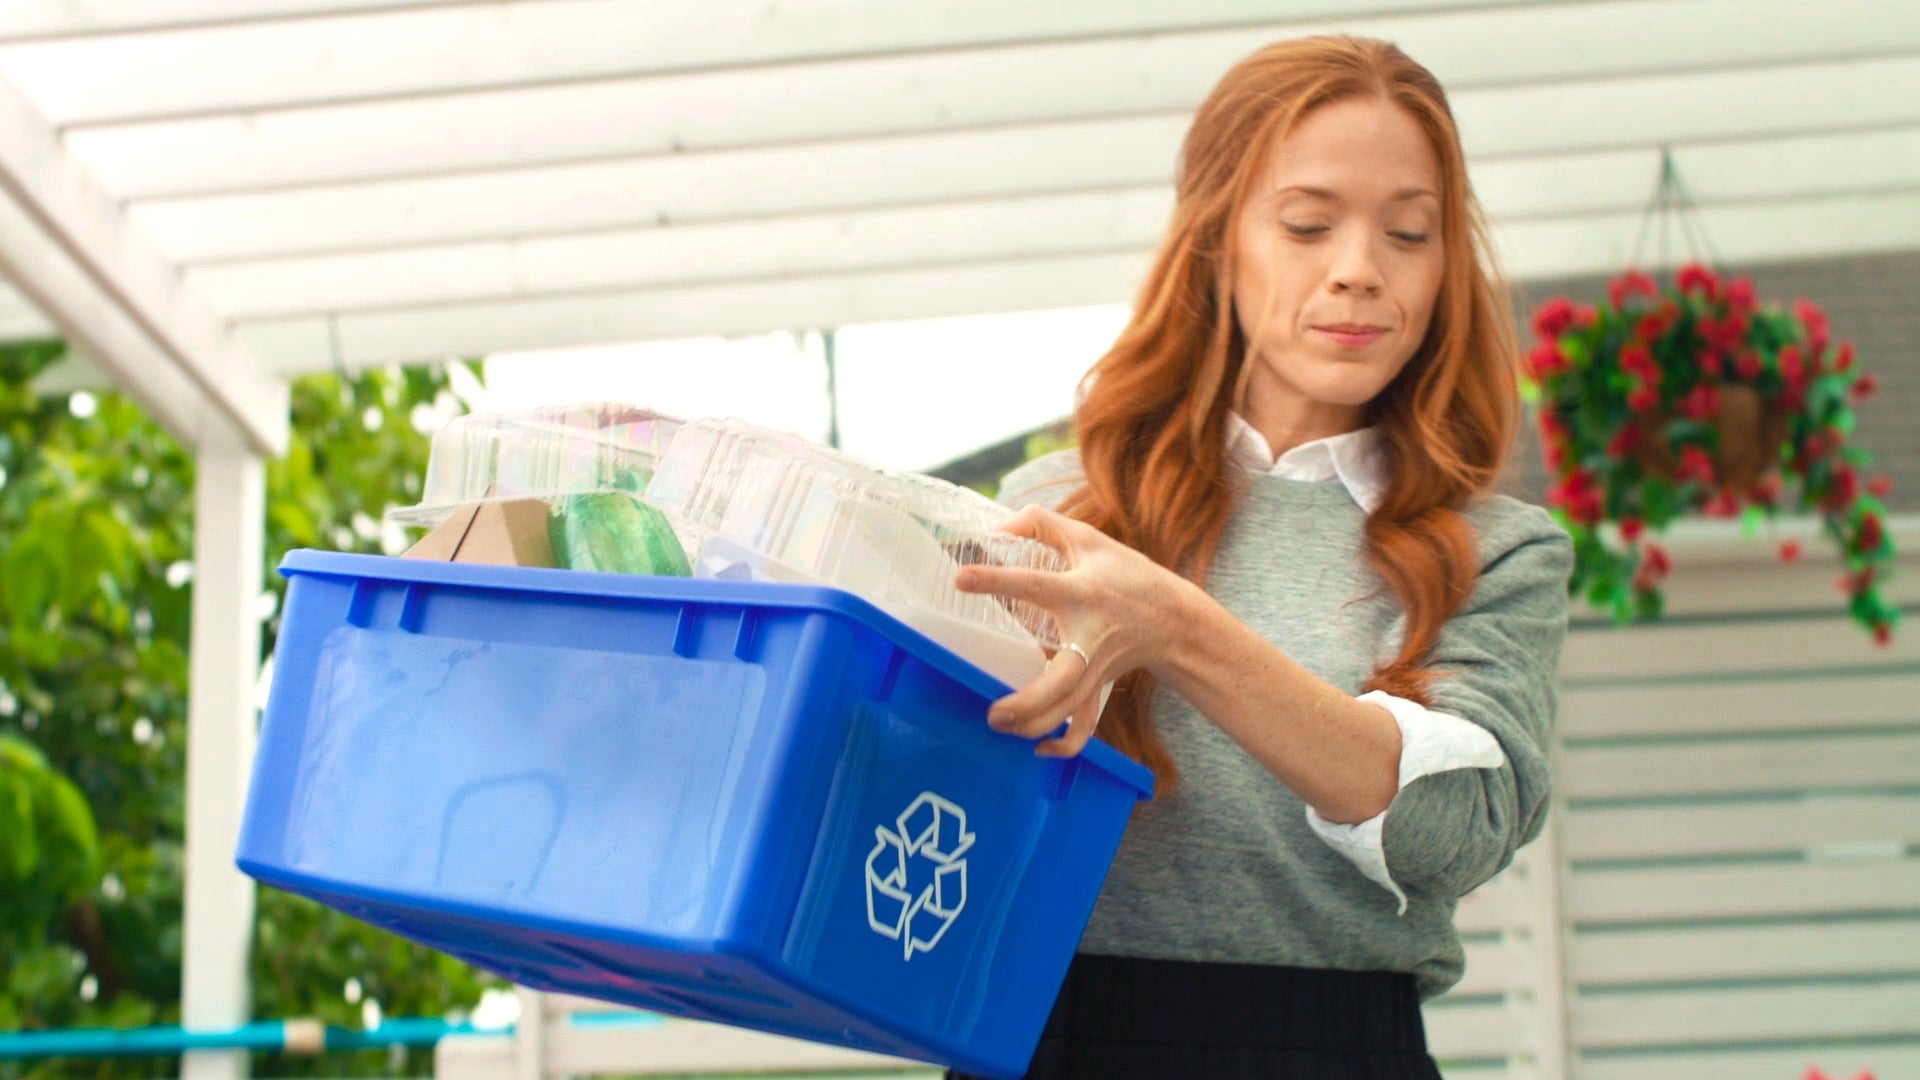 Recycling tips for the super mom